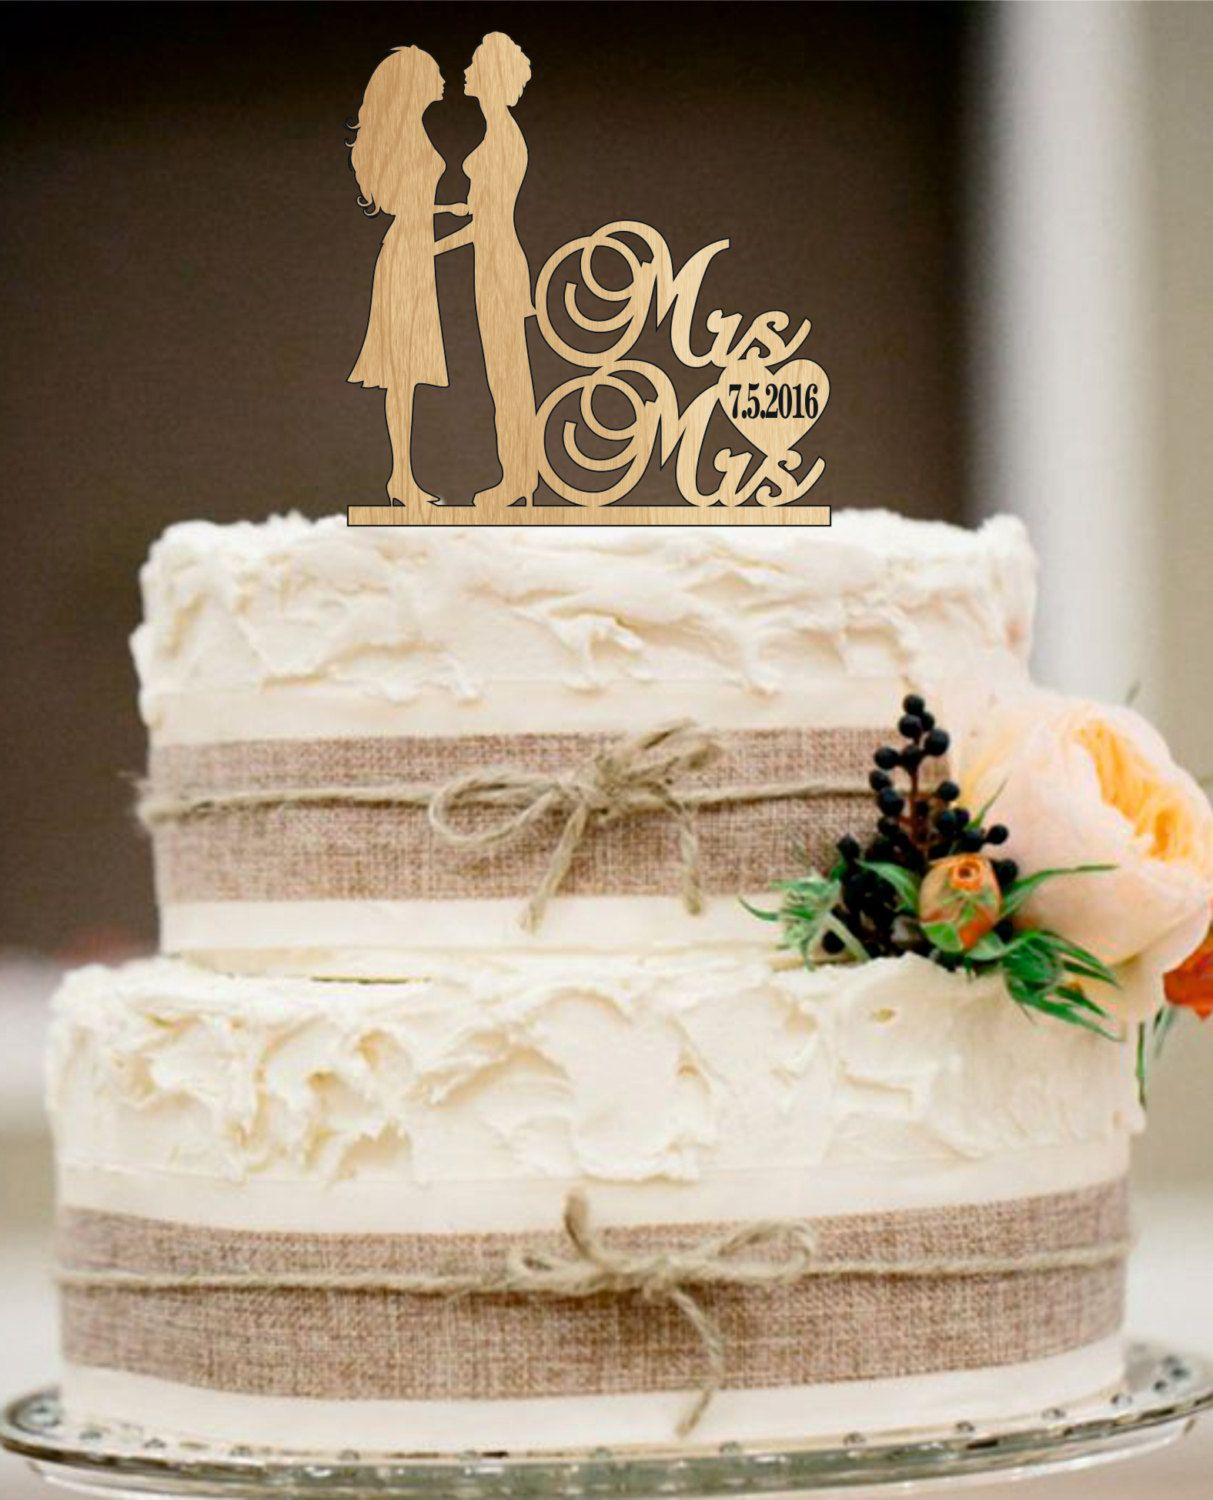 Custom Wedding Cake TopperUnique TopperRustic TopperFunny TopperPersonalized Topper By